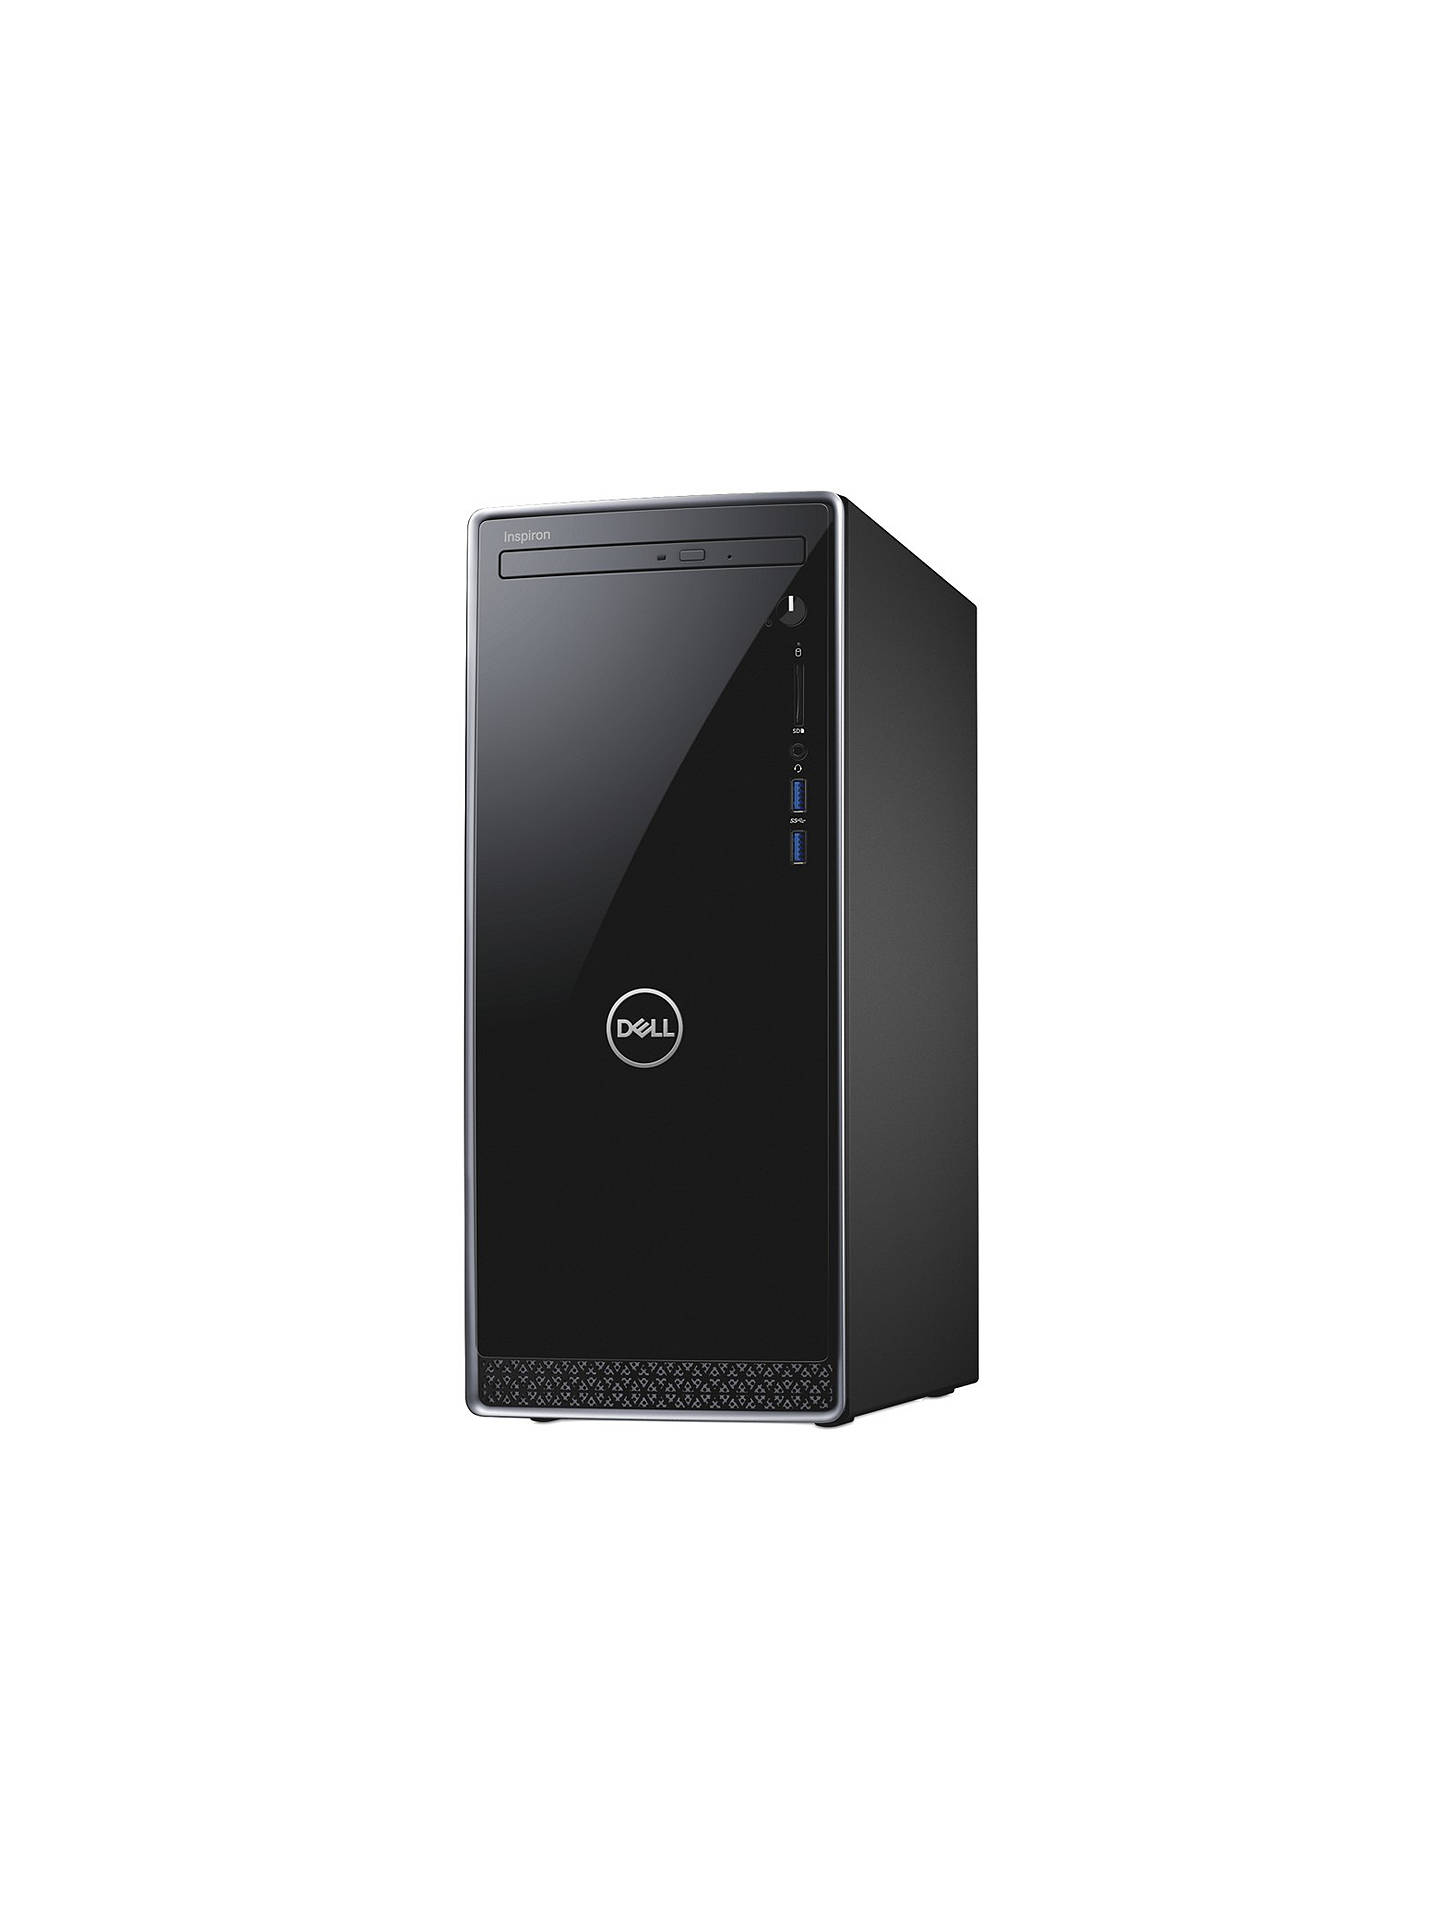 Dell Inspiron 3670 Desktop PC, Intel Core i3, 8GB RAM, 1TB HDD, Black